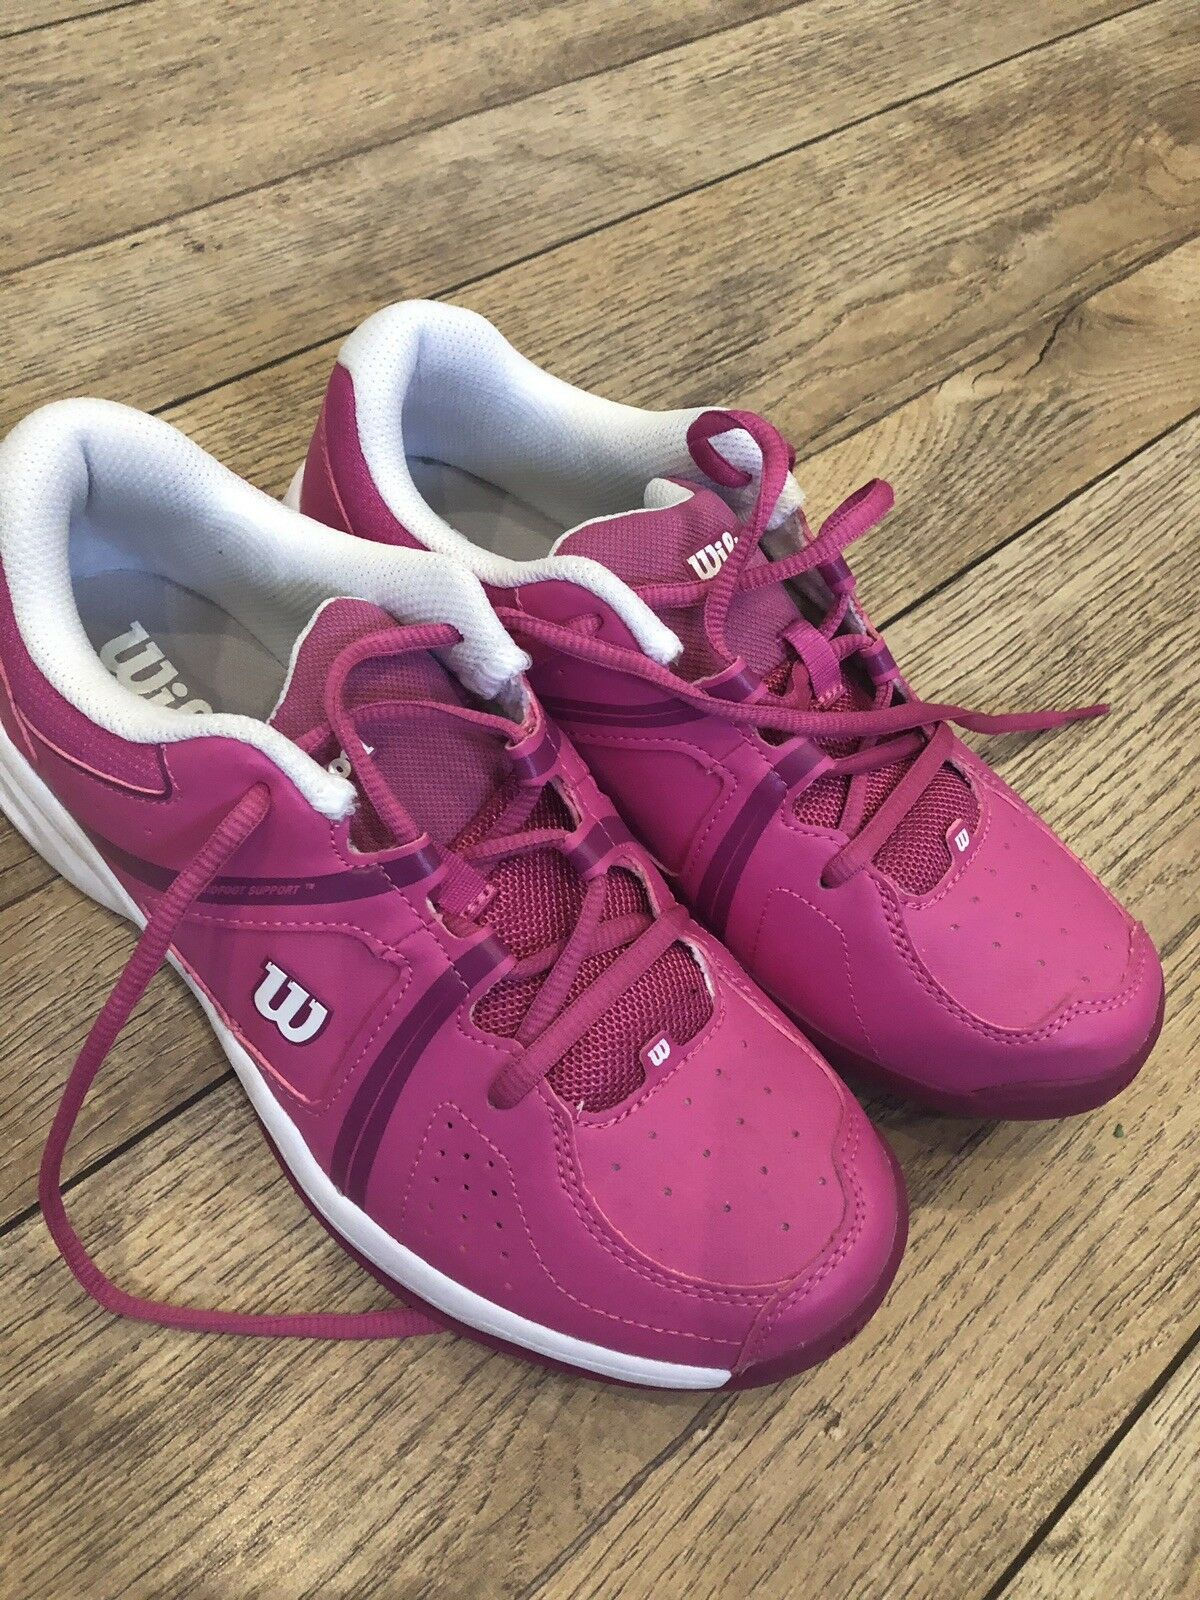 Pink Wilson ENVY JR Junior Tennis Trainers, Size 5.5, Literallly Worn Once